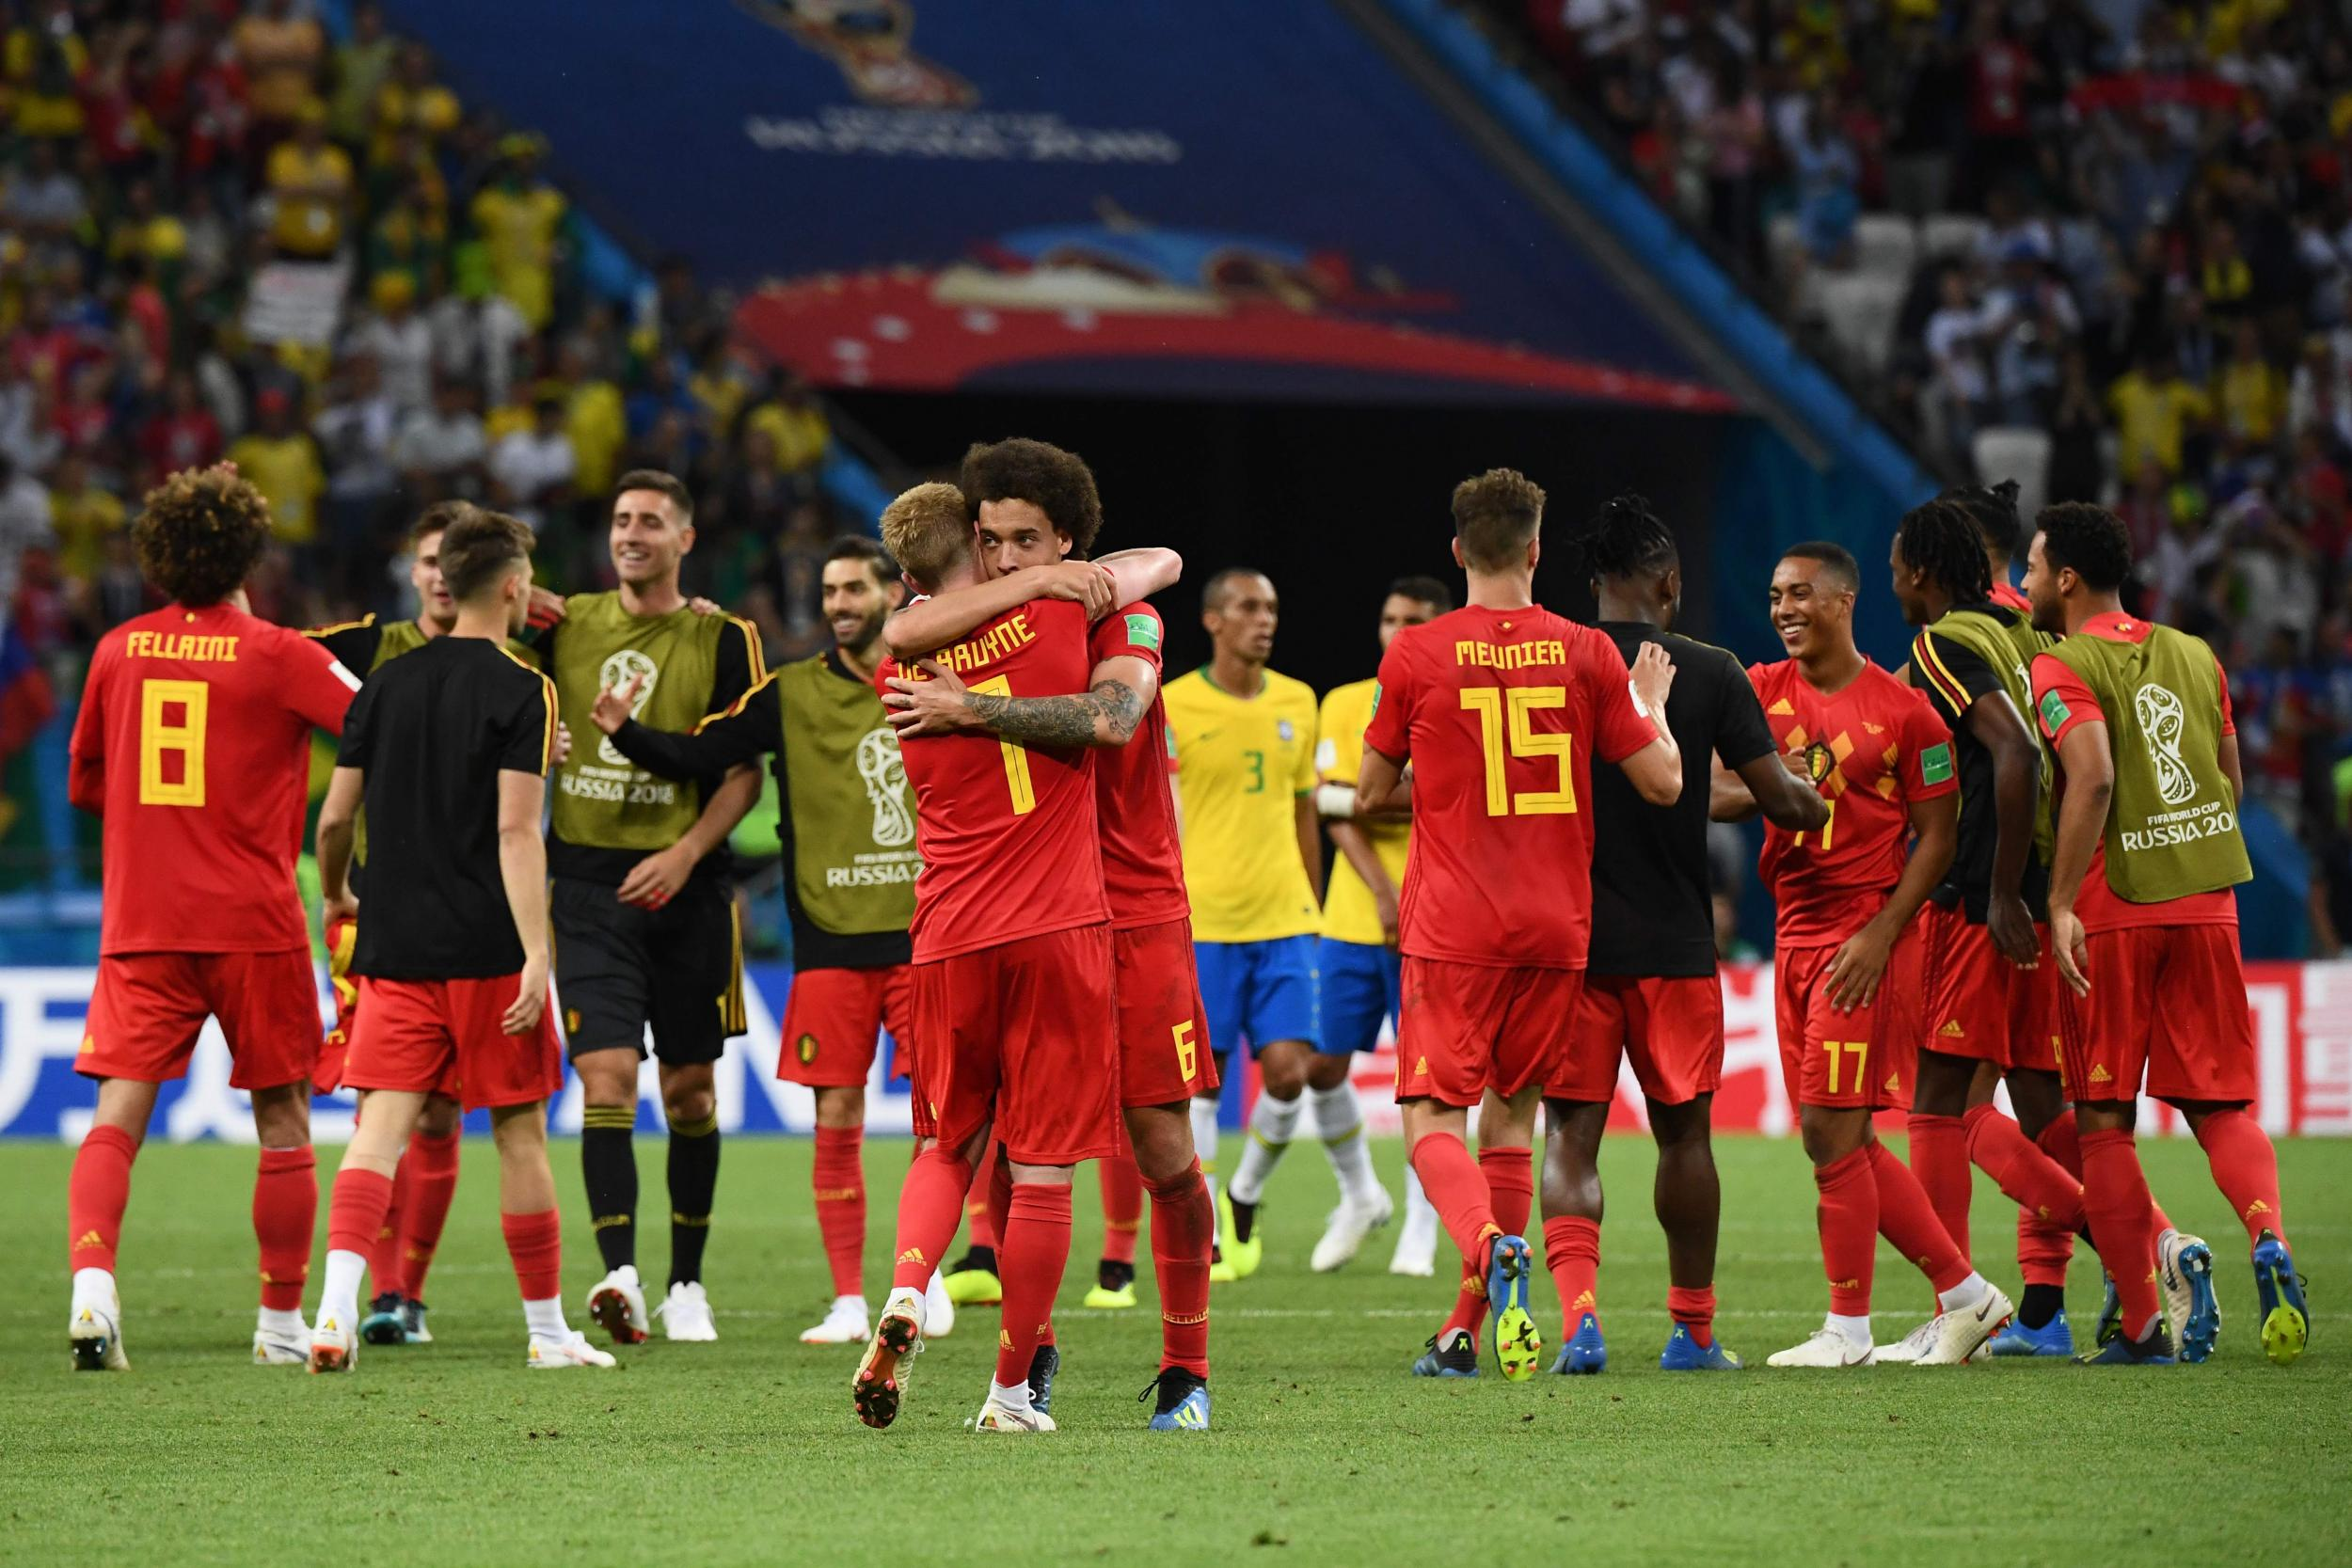 Image result for Belgium advance to World Cup semifinals, Brazil out - Belgians to face France in semifinals after beating Brazil 2-1